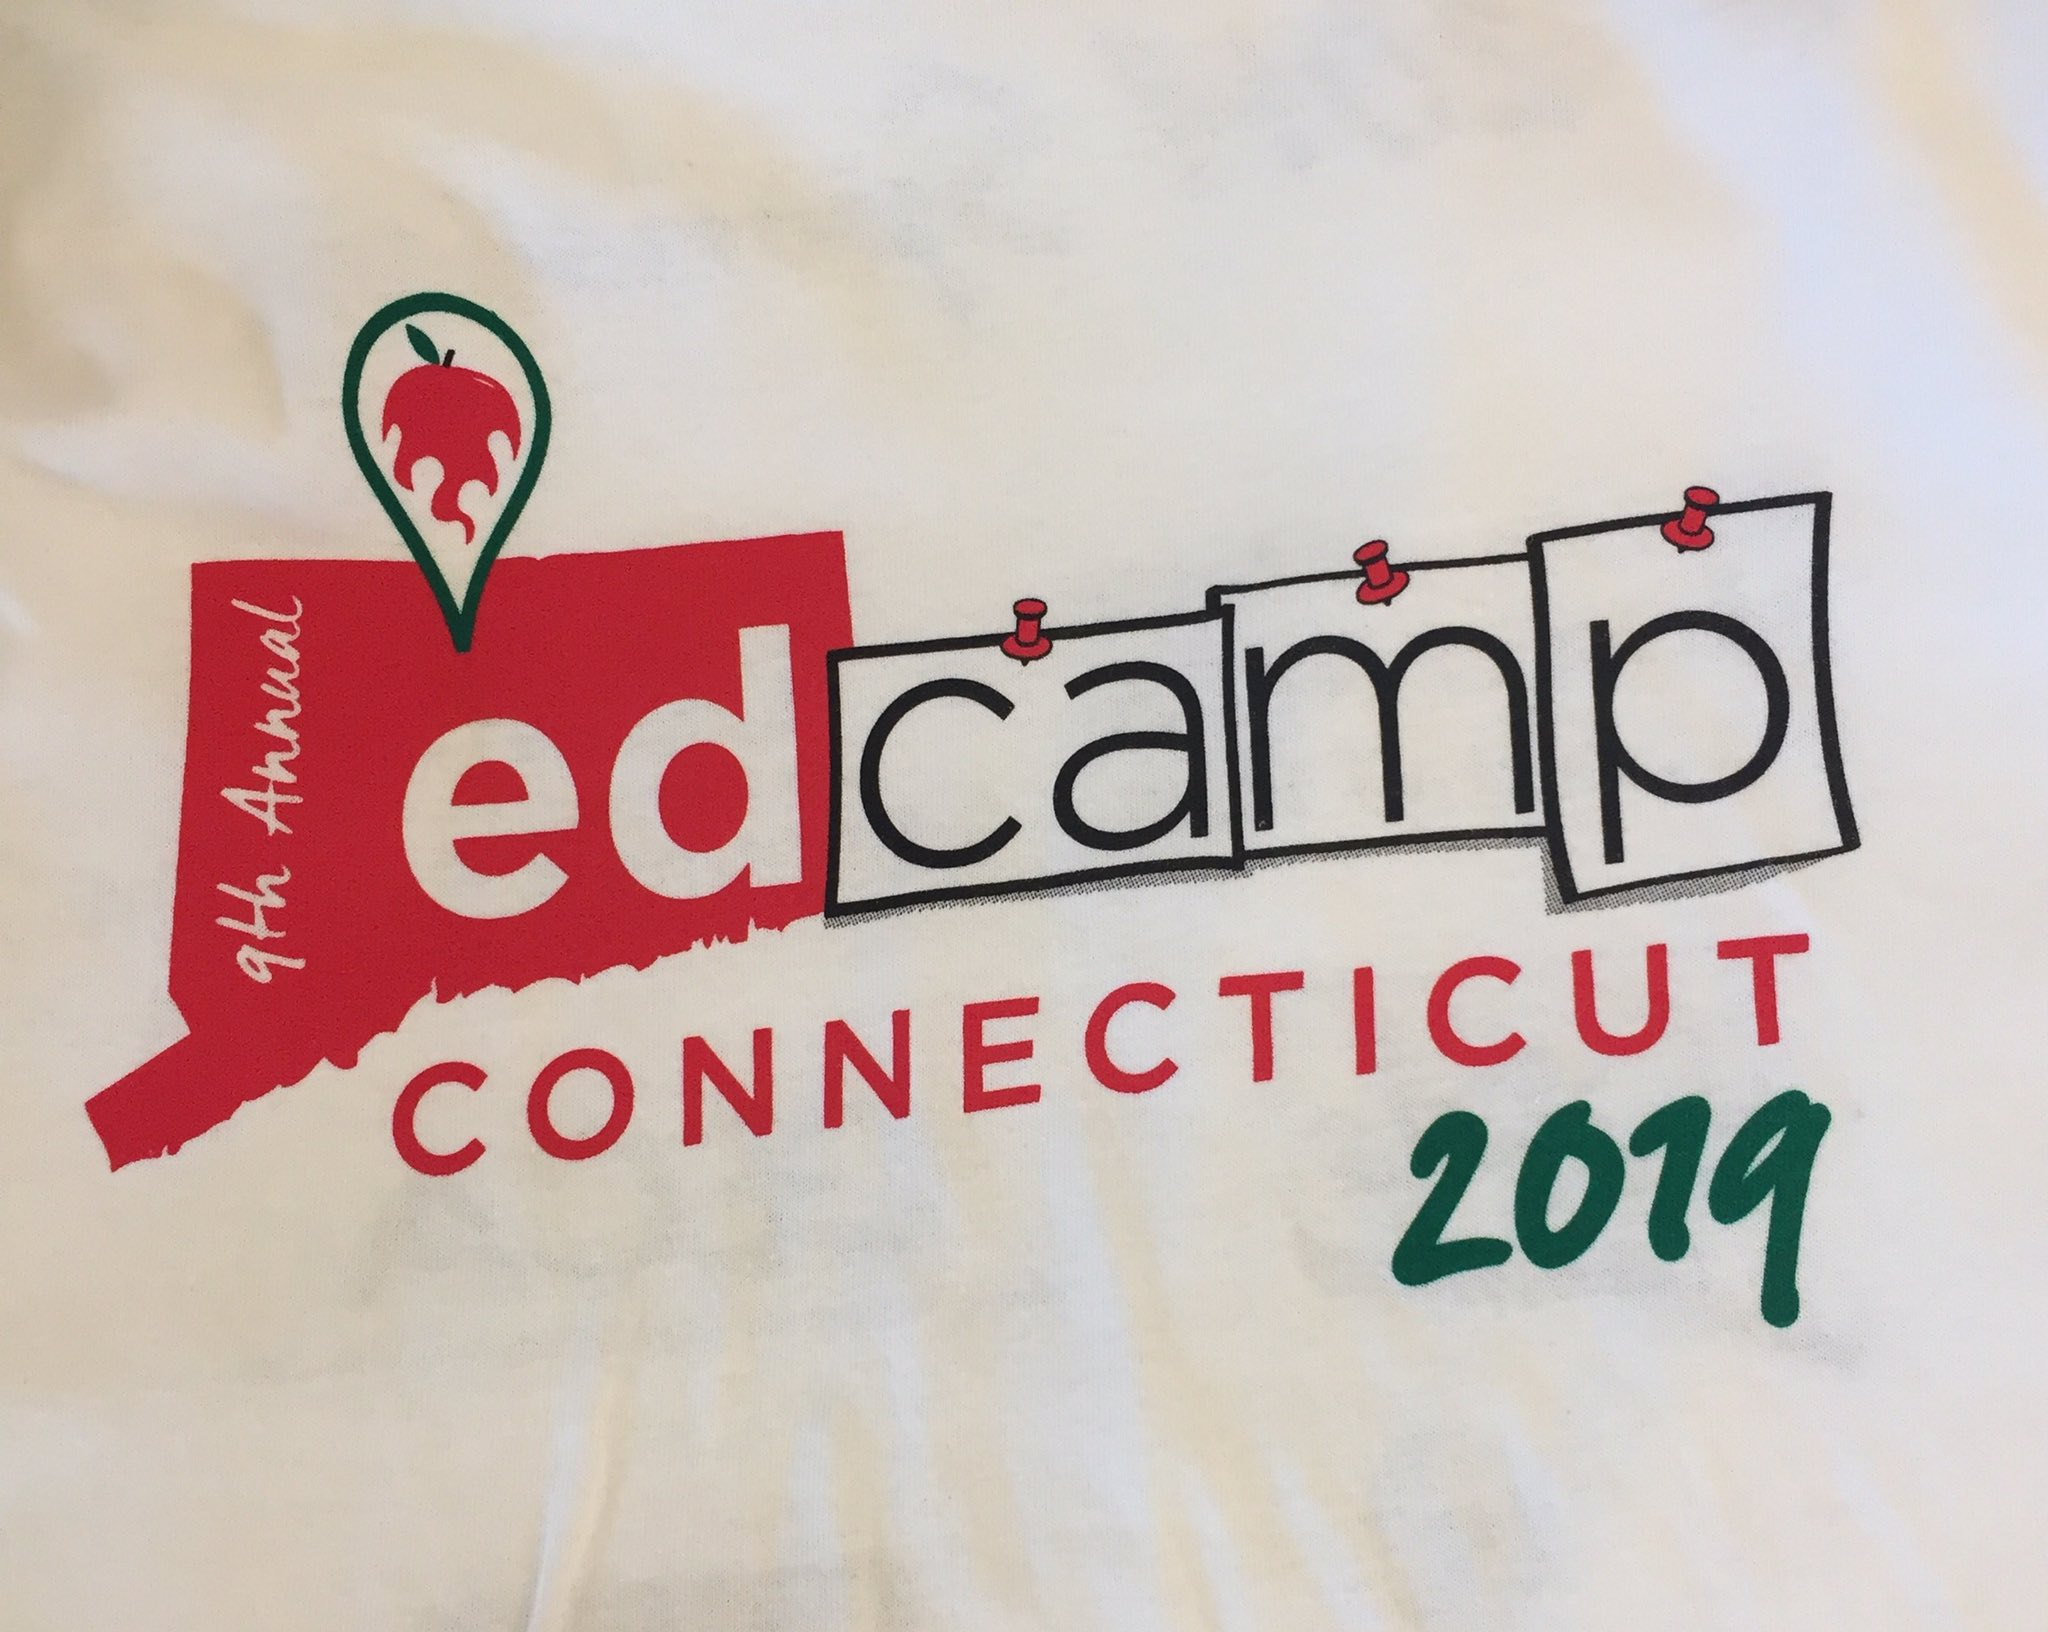 RT @3Duxdesign: Looking forward to a fun day at camp #edcampct #edcamp #schoolready https://t.co/NM2zfO9LsW